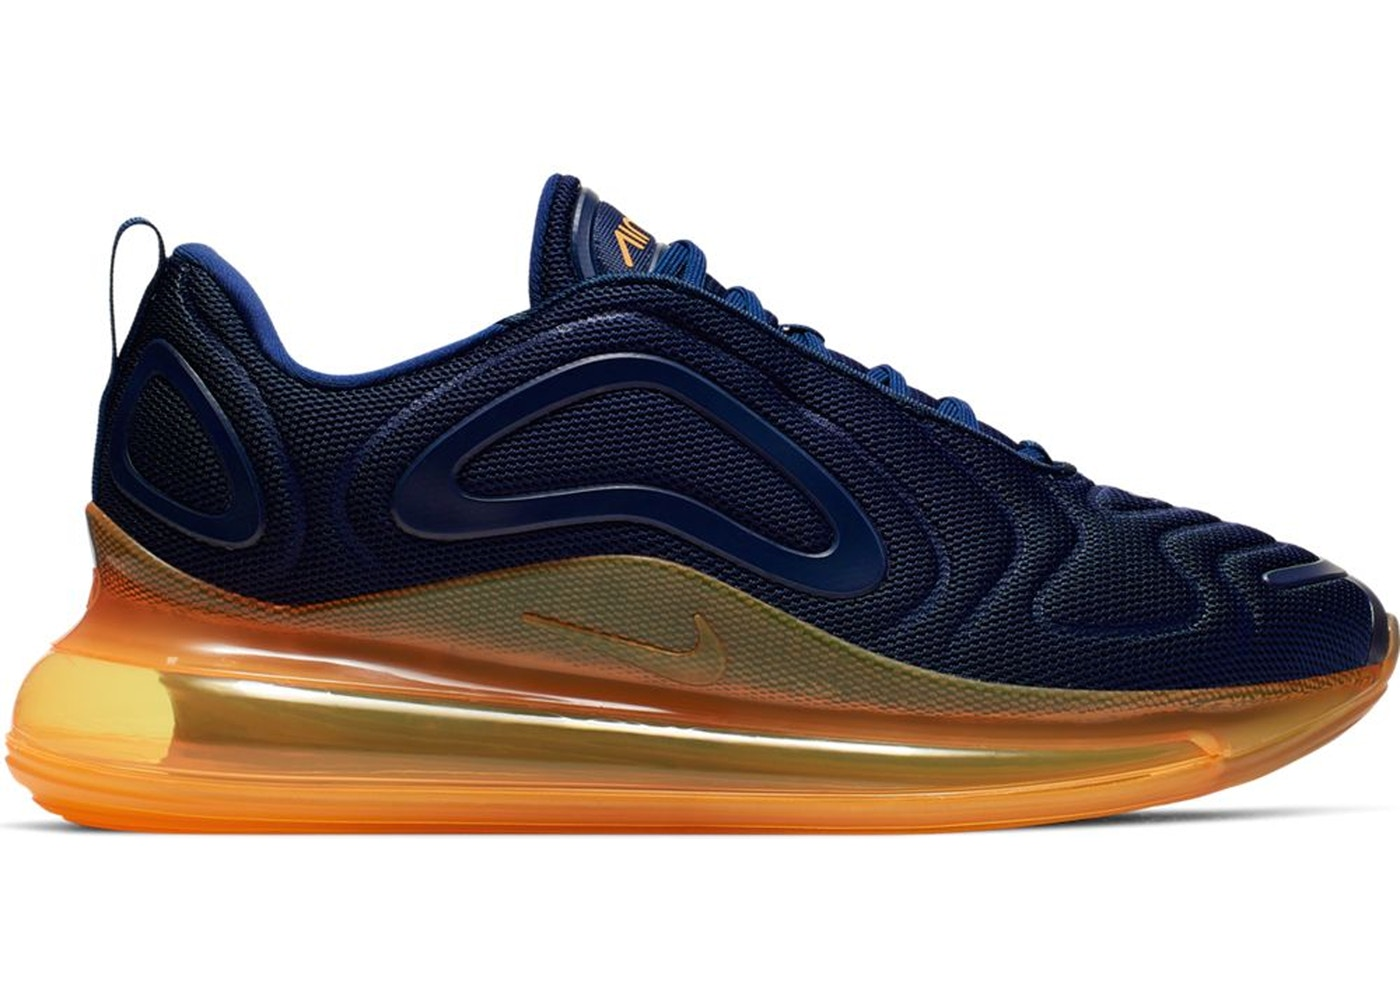 Nike Air Max 720 Midnight Navy Laser Orange - AO2924-401